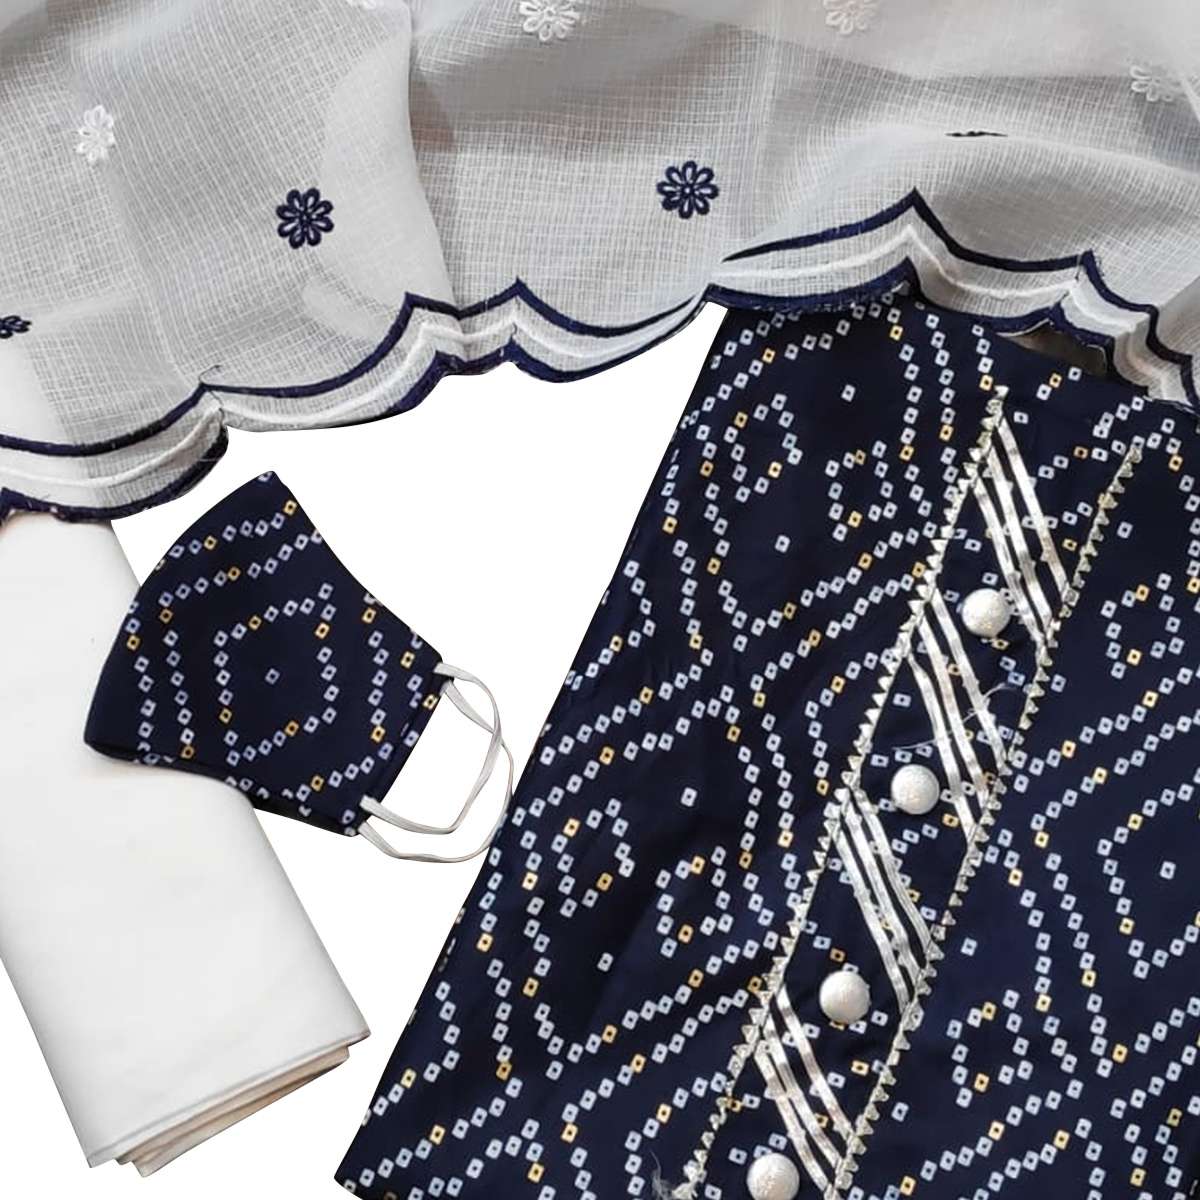 Ravishing Navy Blue Colored Partywear Printed Cotton Dress Material